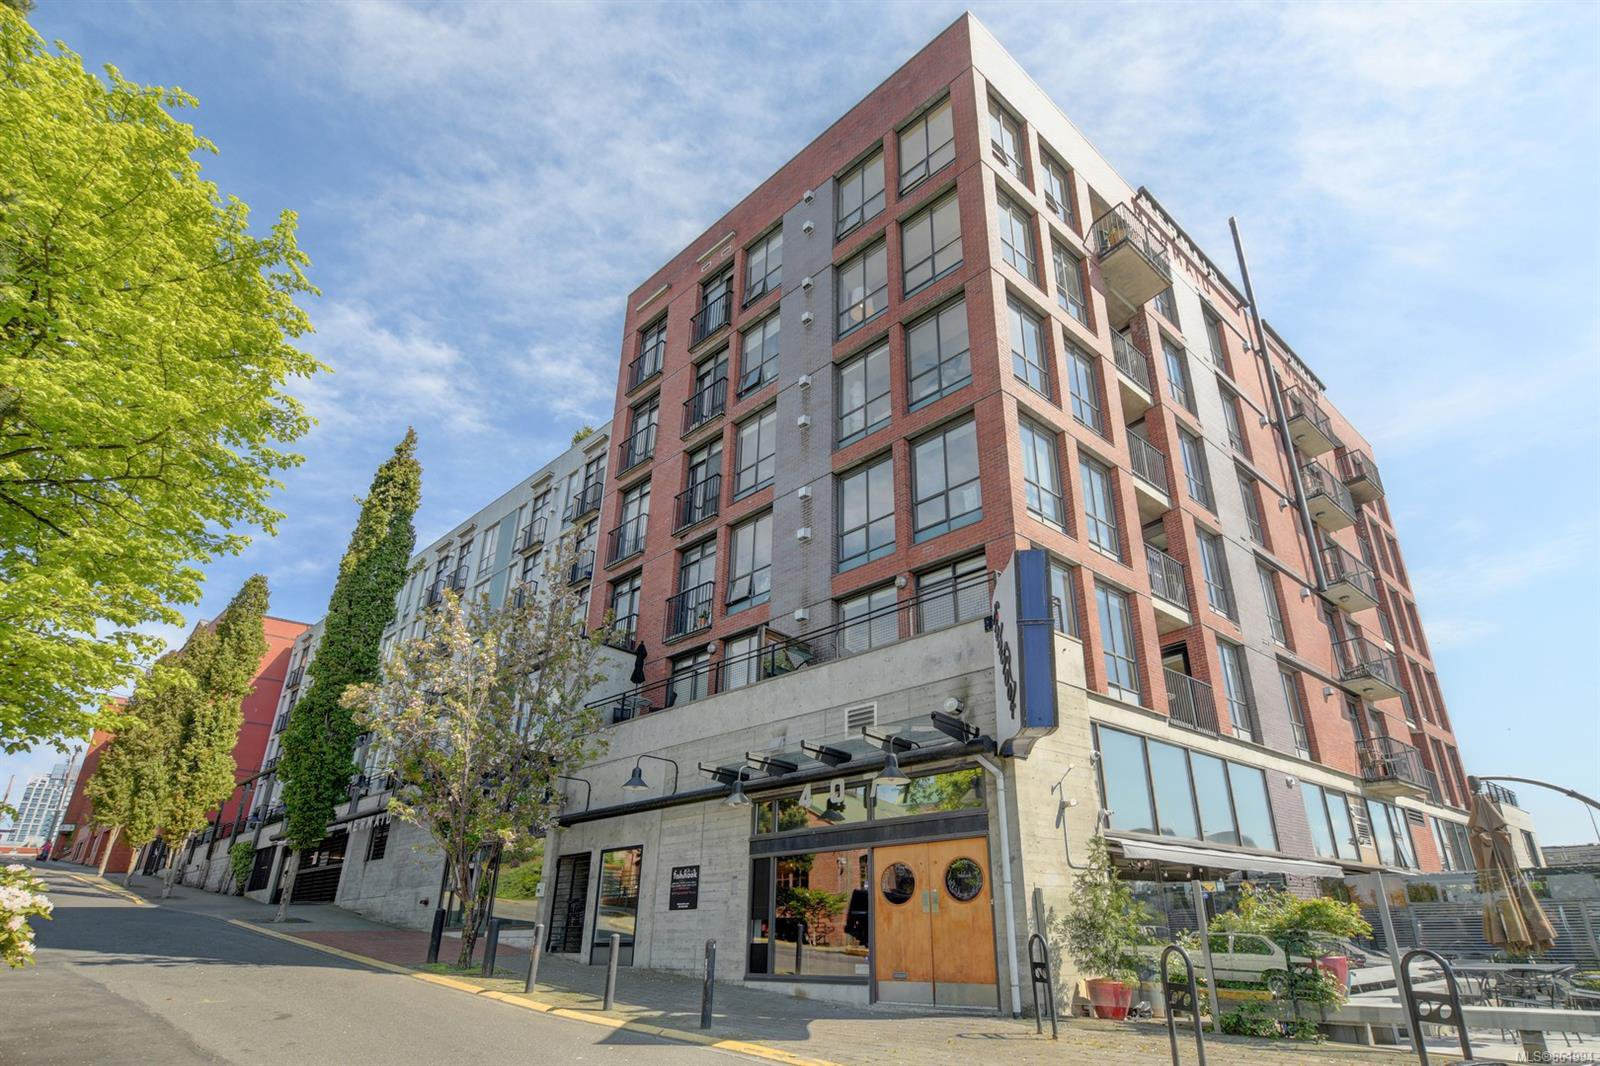 Main Photo: 218 409 Swift St in : Vi Downtown Condo for sale (Victoria)  : MLS®# 861994